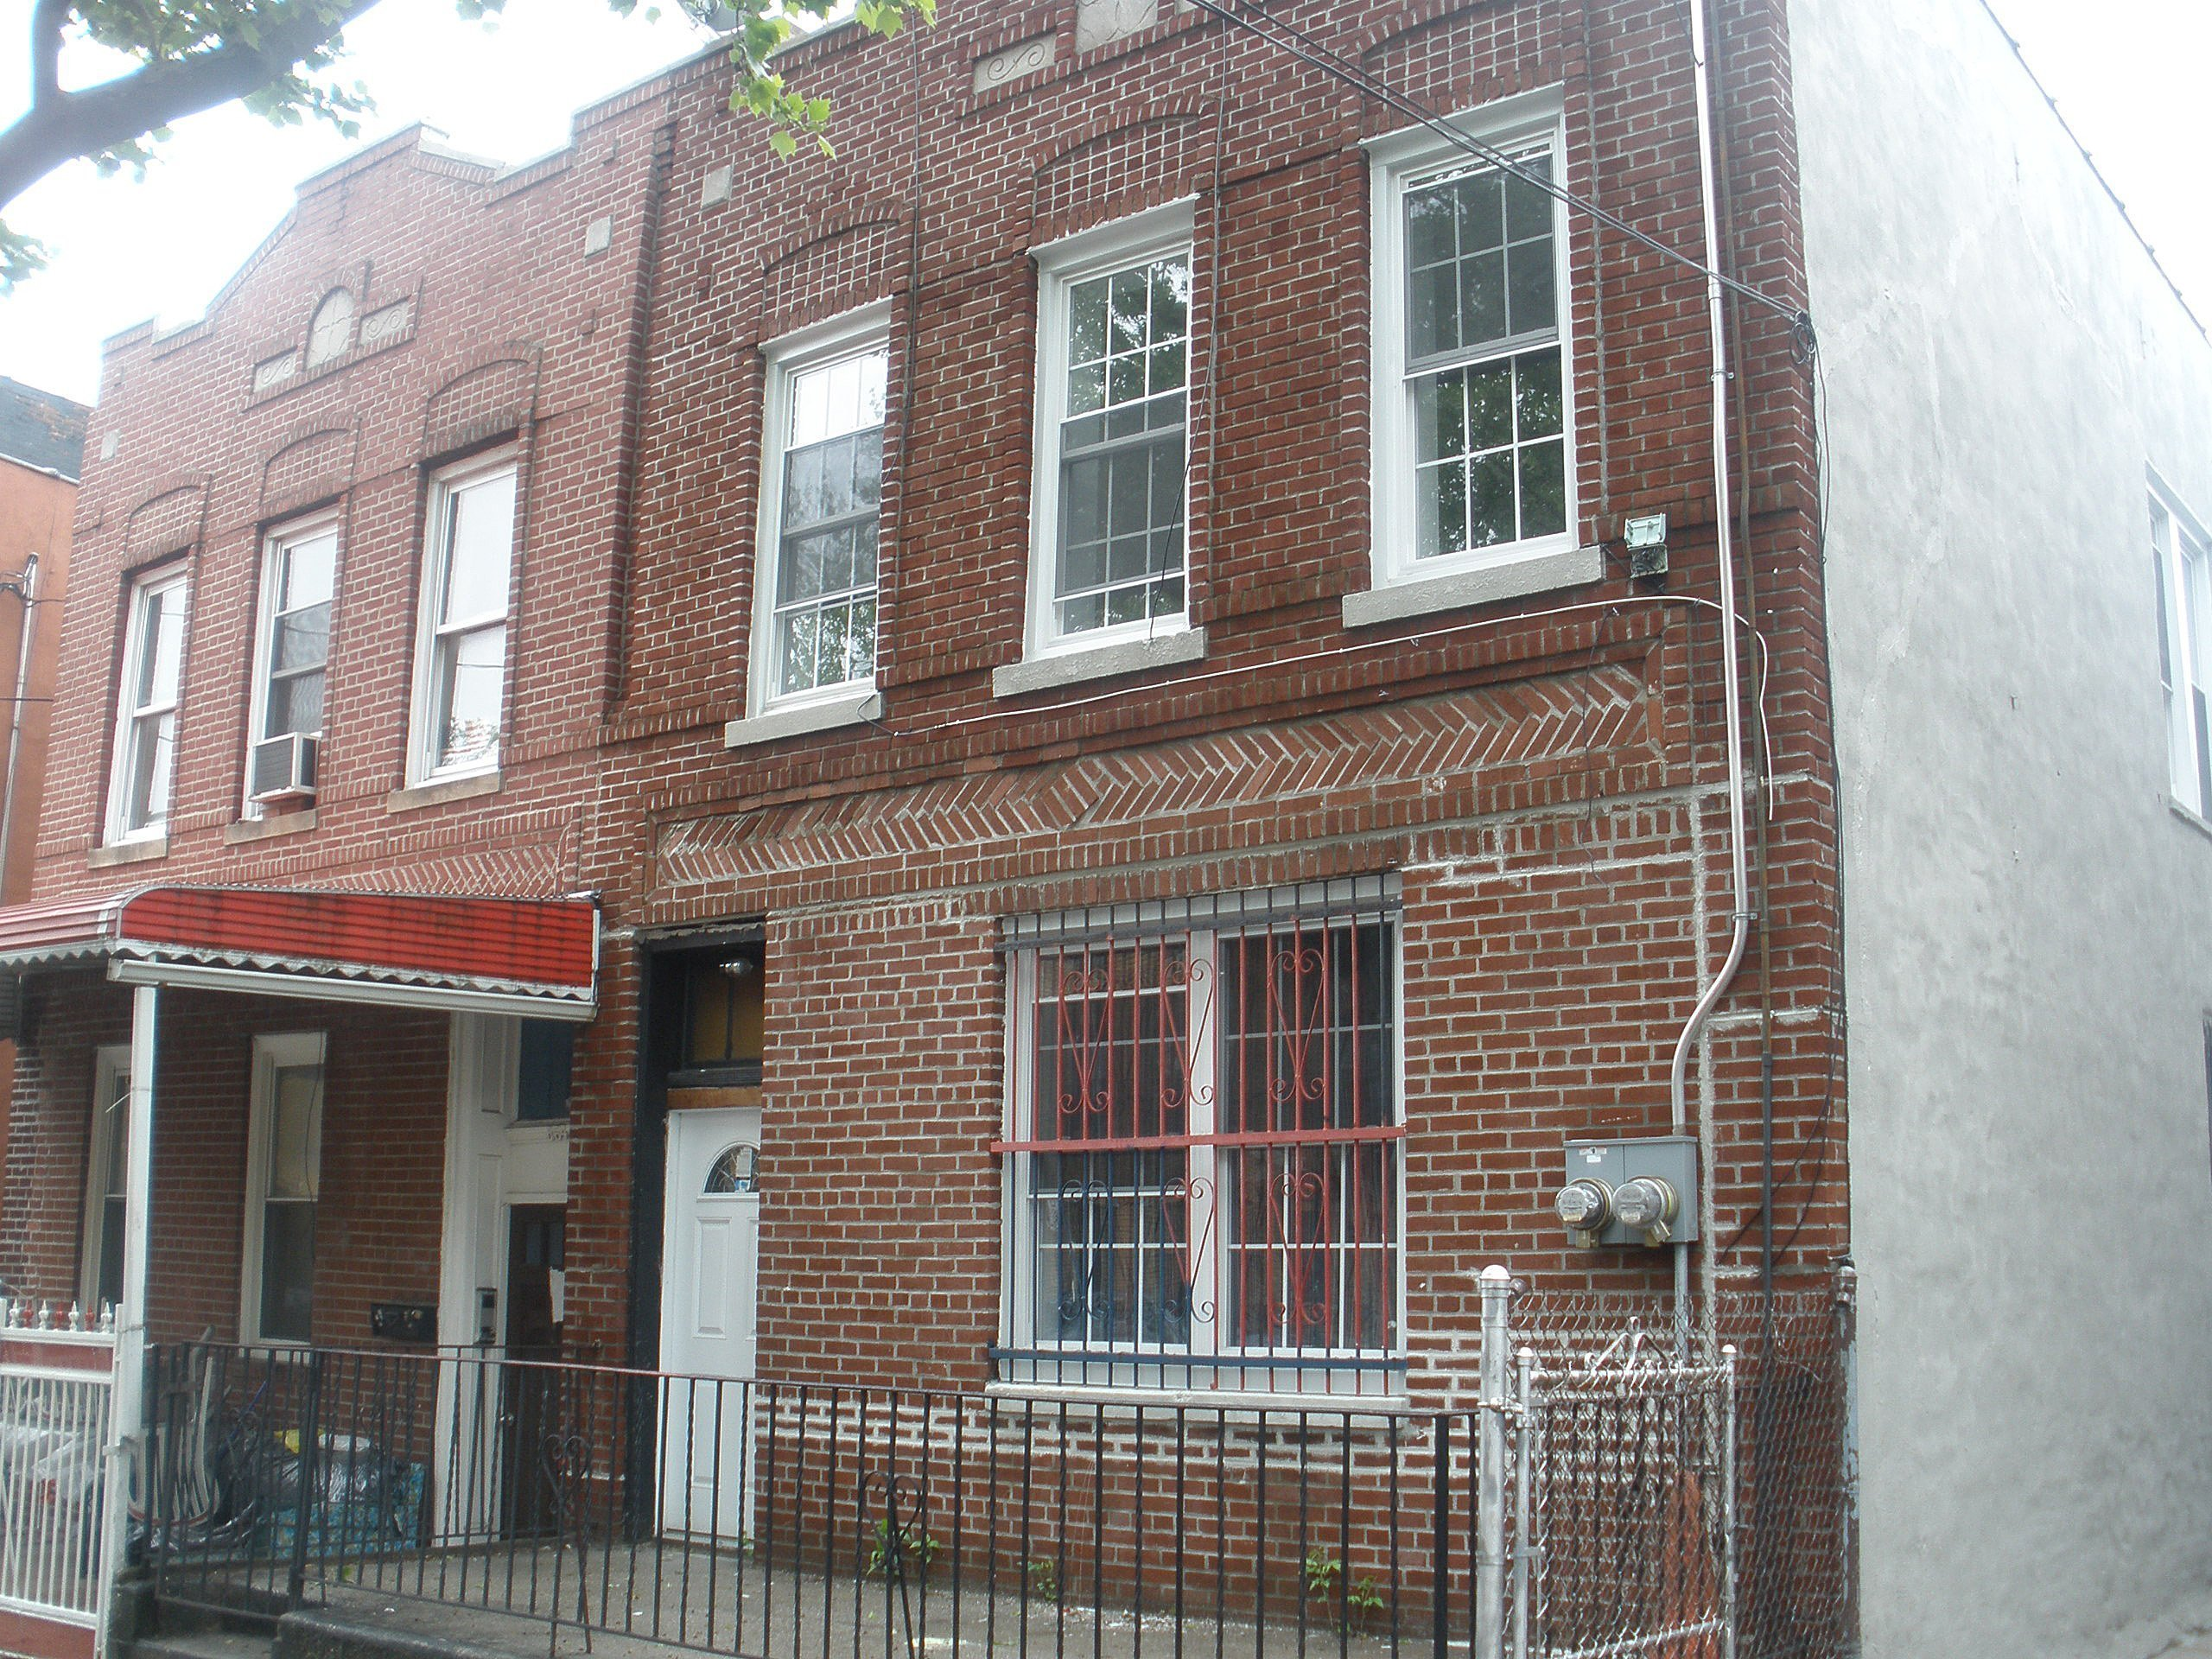 2 family brownsville house for sale brooklyn crg1060 for Buying a house in brooklyn